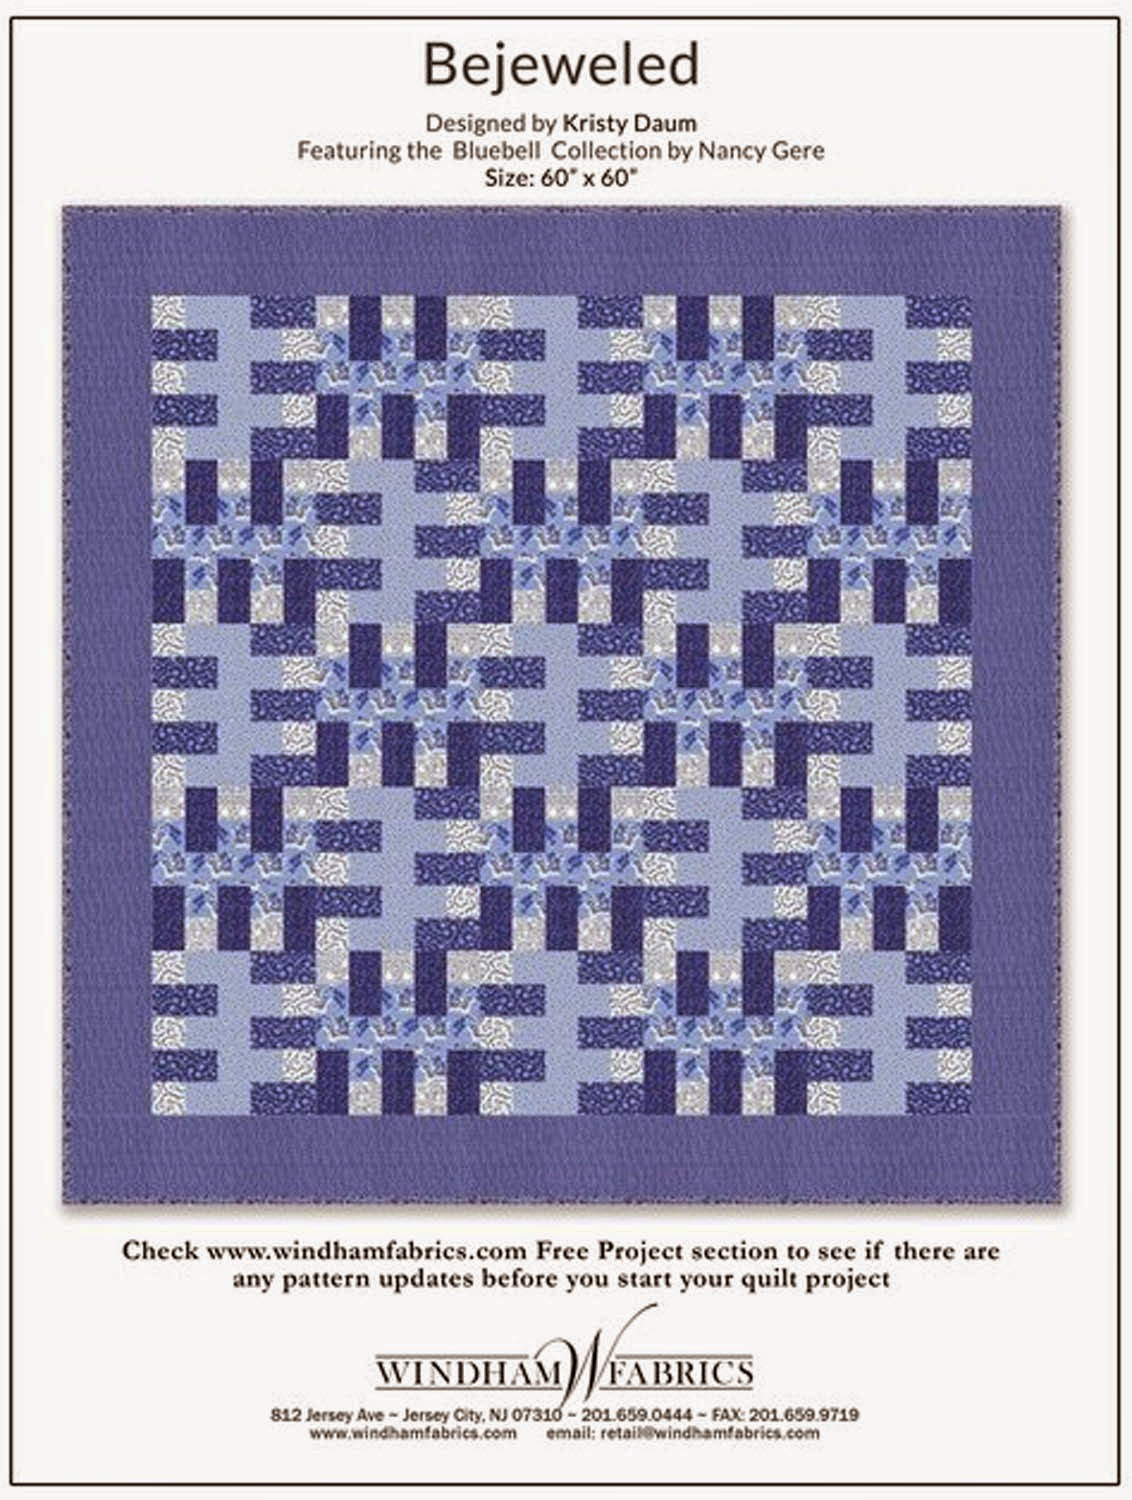 BEJEWELED Quilt Pattern